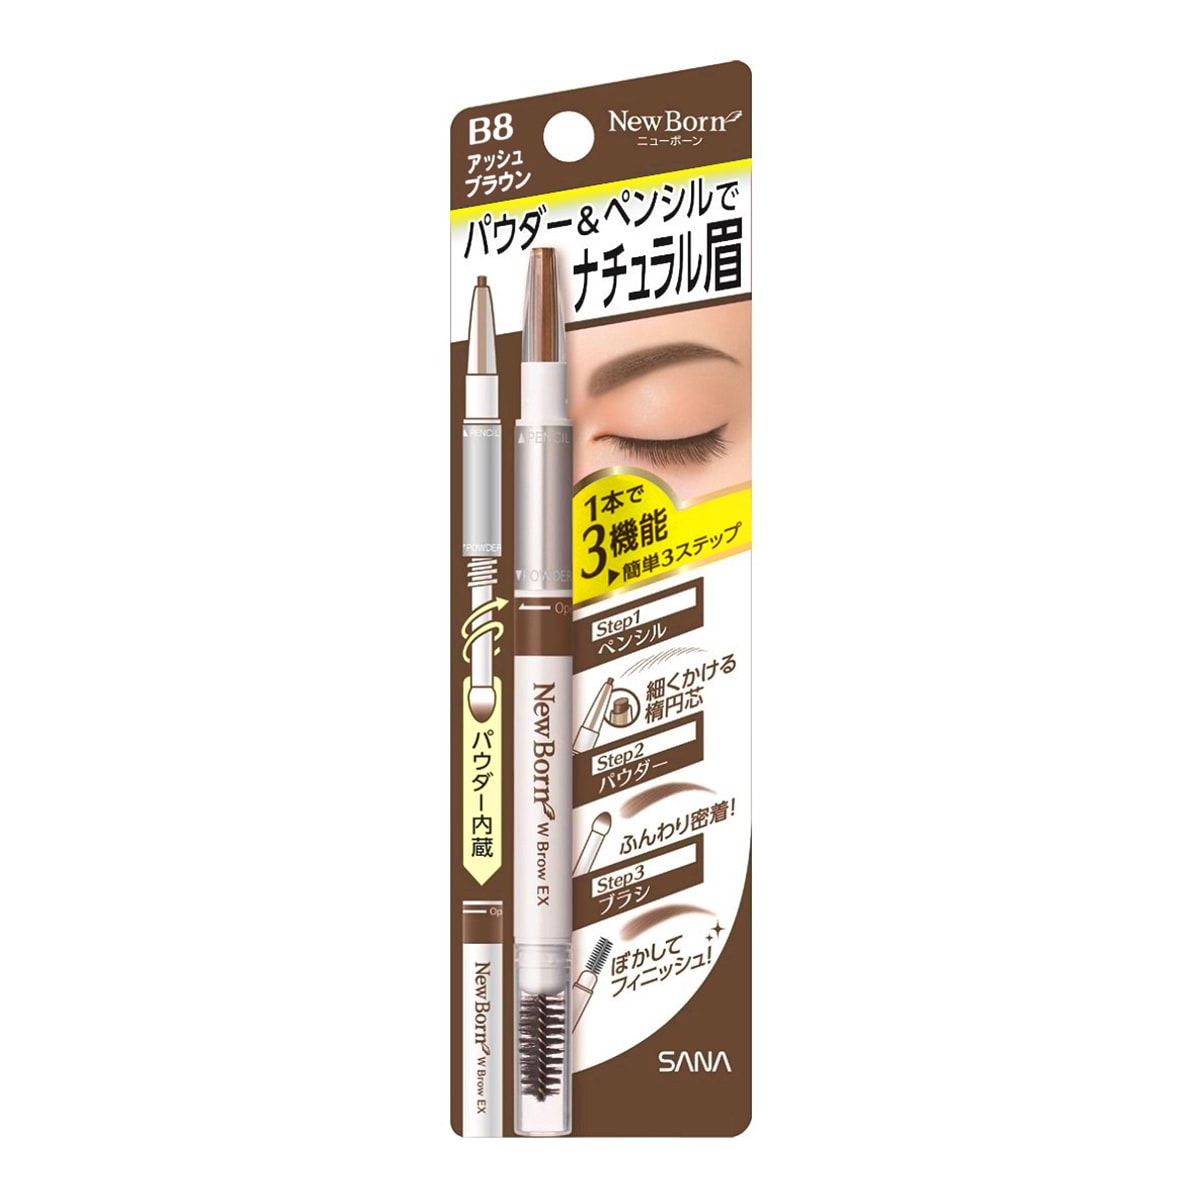 SANA NEW BORN EX Eyebrow Mascara And Pencil #B8 Ash Brown 1pc